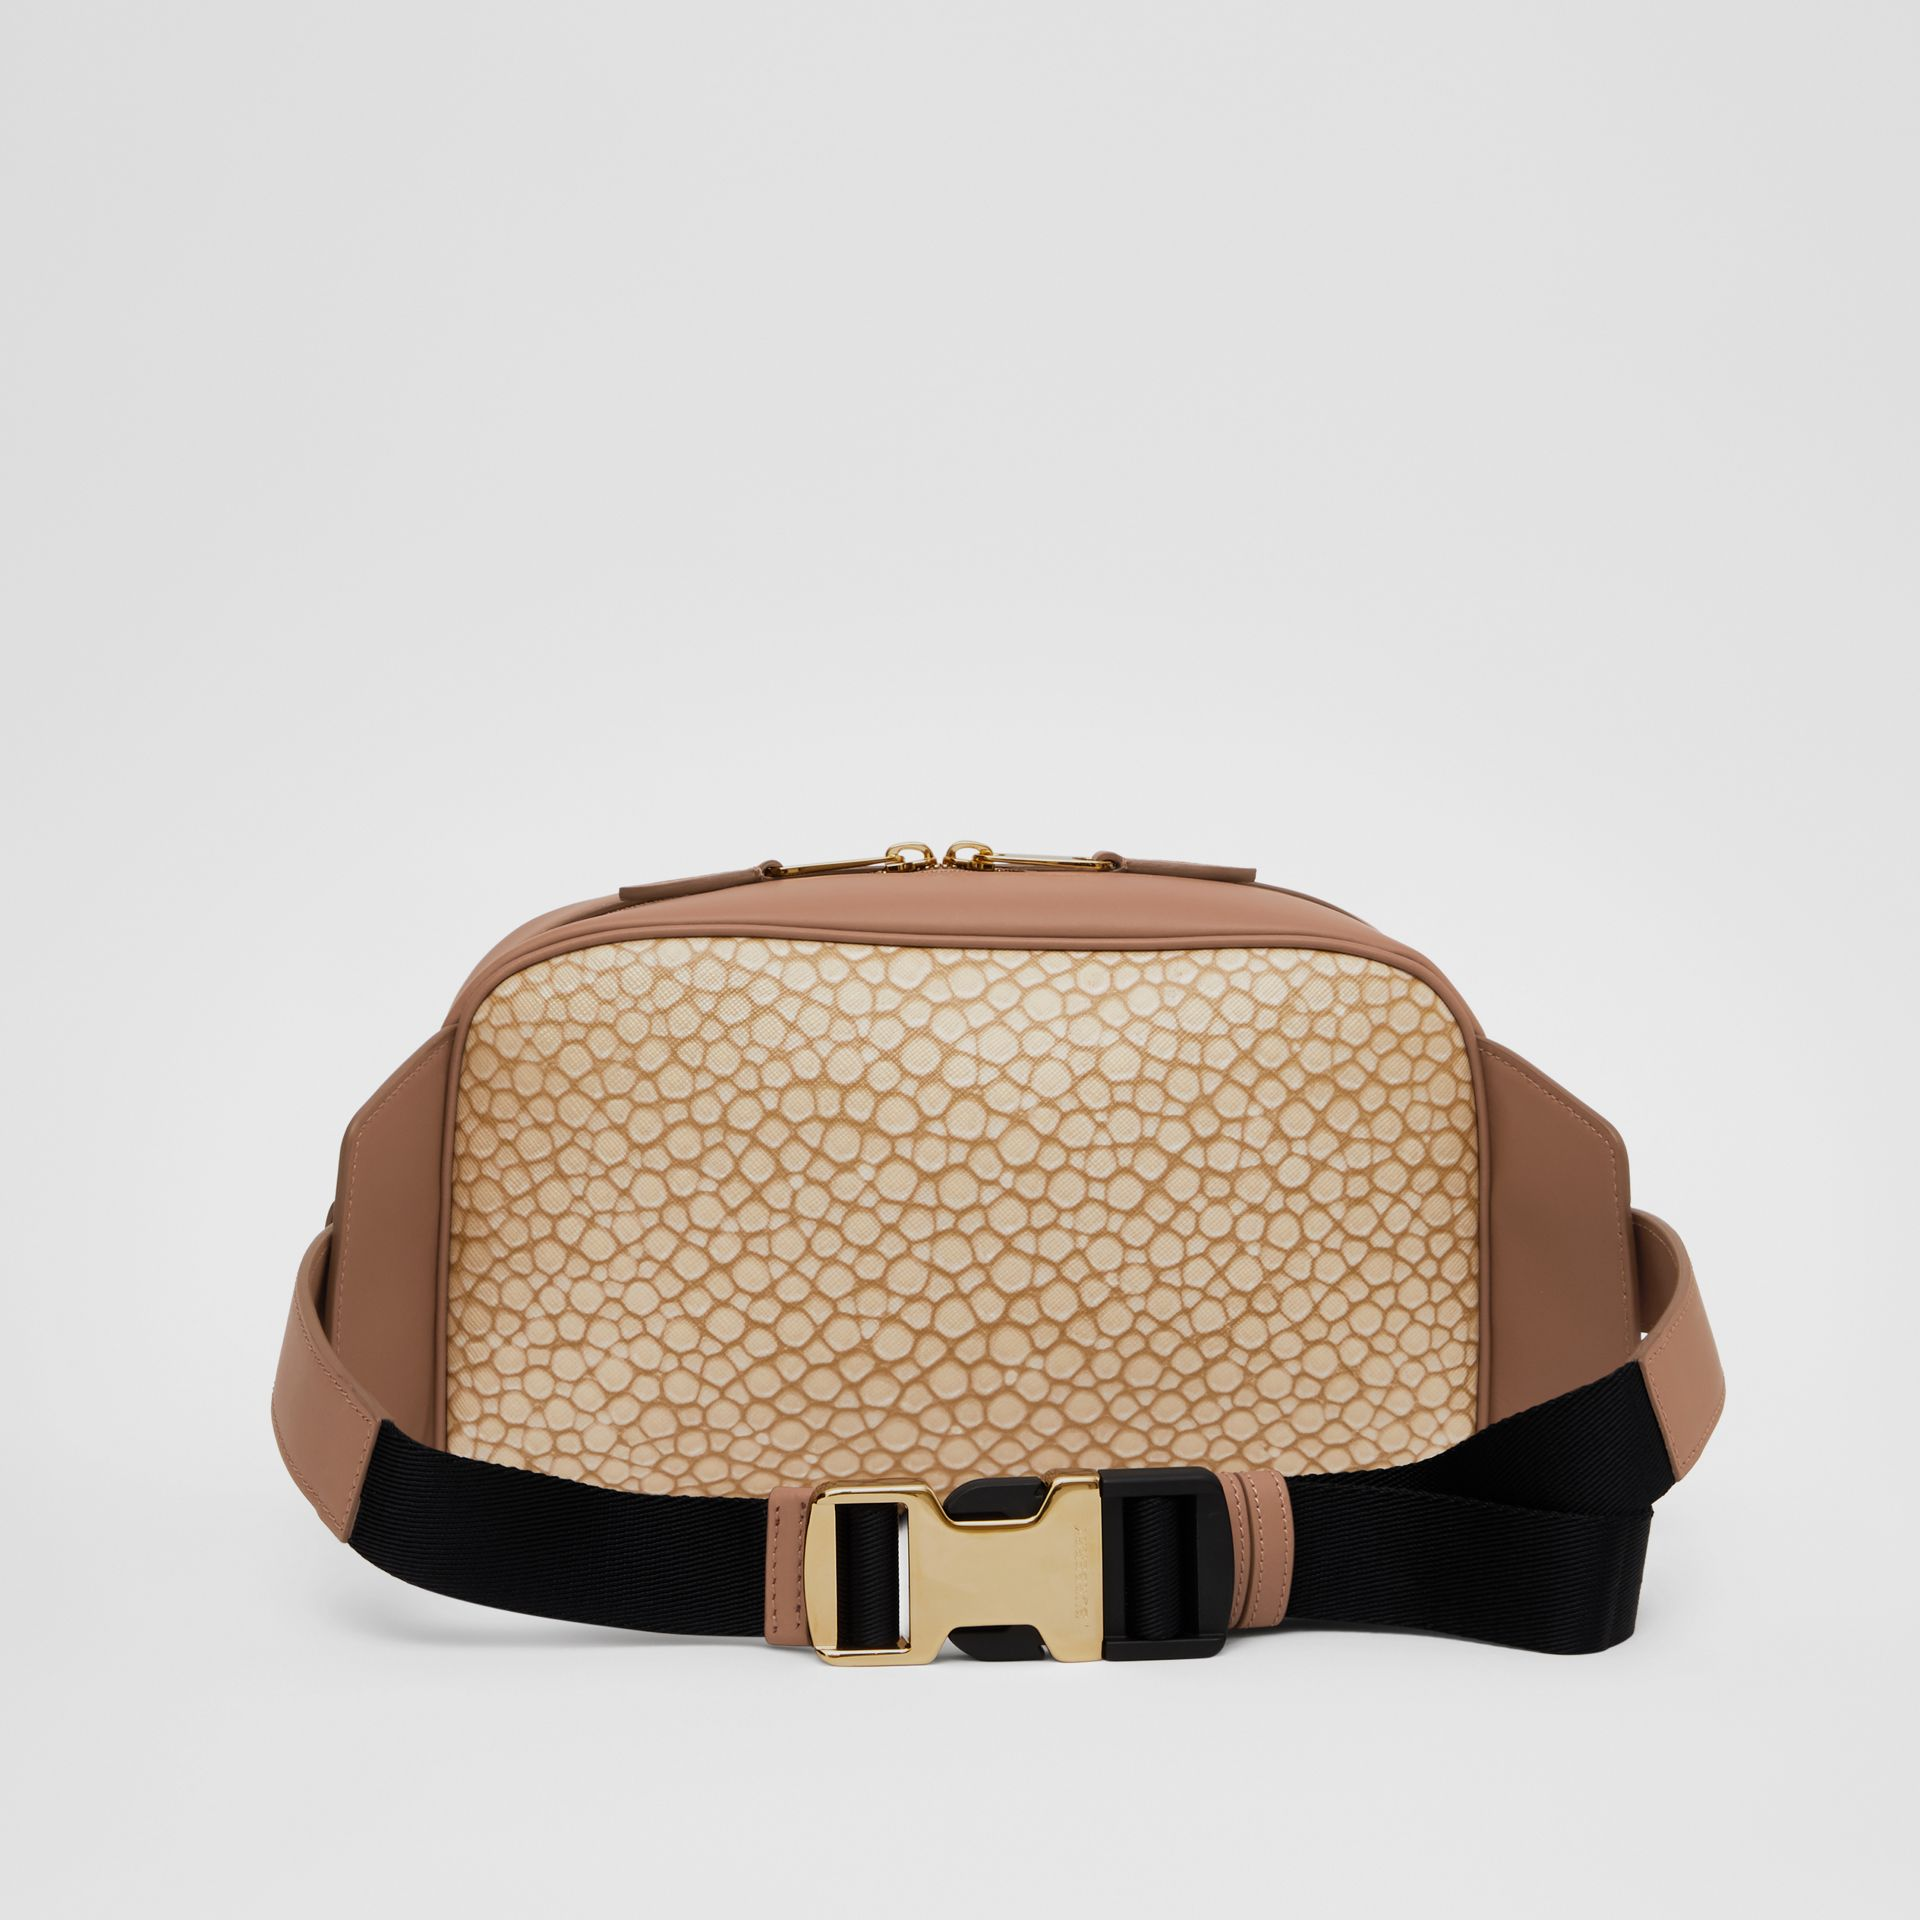 Fish-scale Print and Leather Cube Bum Bag in Light Sand - Women | Burberry - gallery image 5